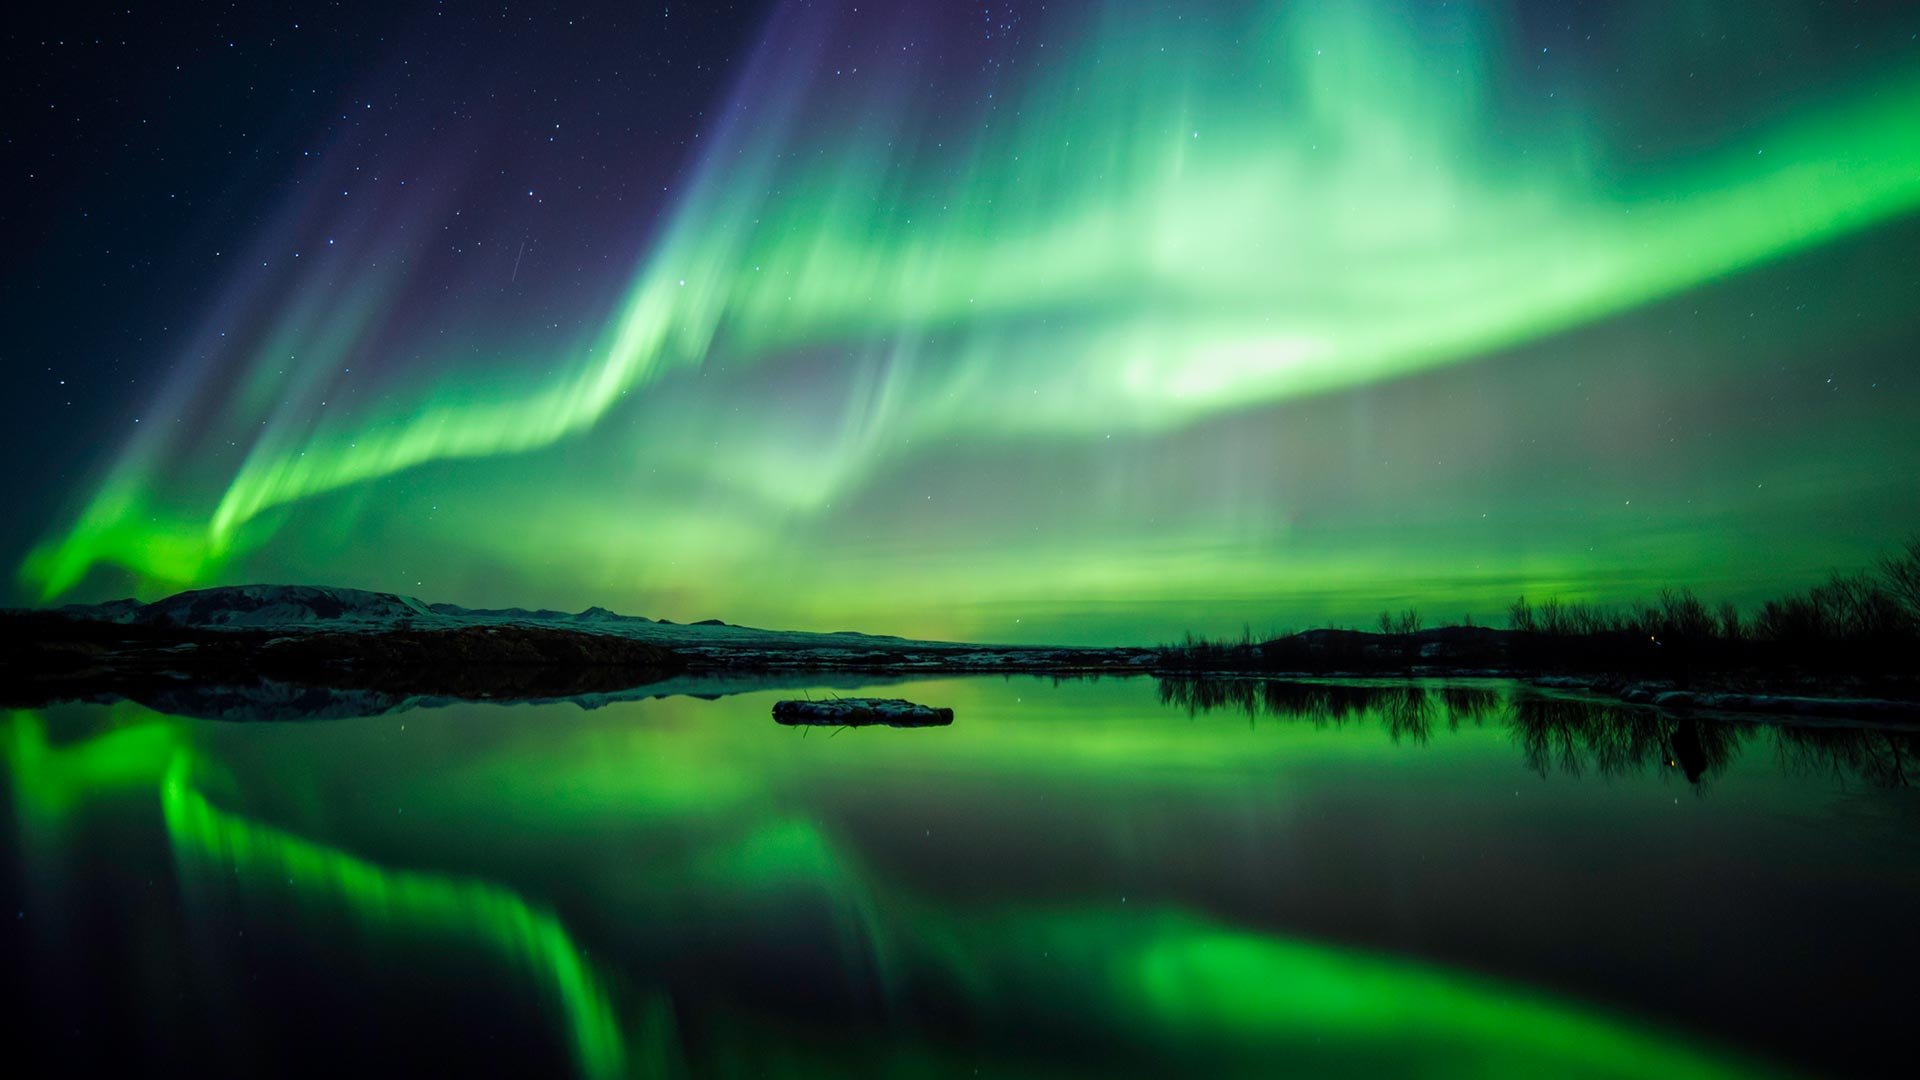 Amazing Natural Phenomena: Northern Lights